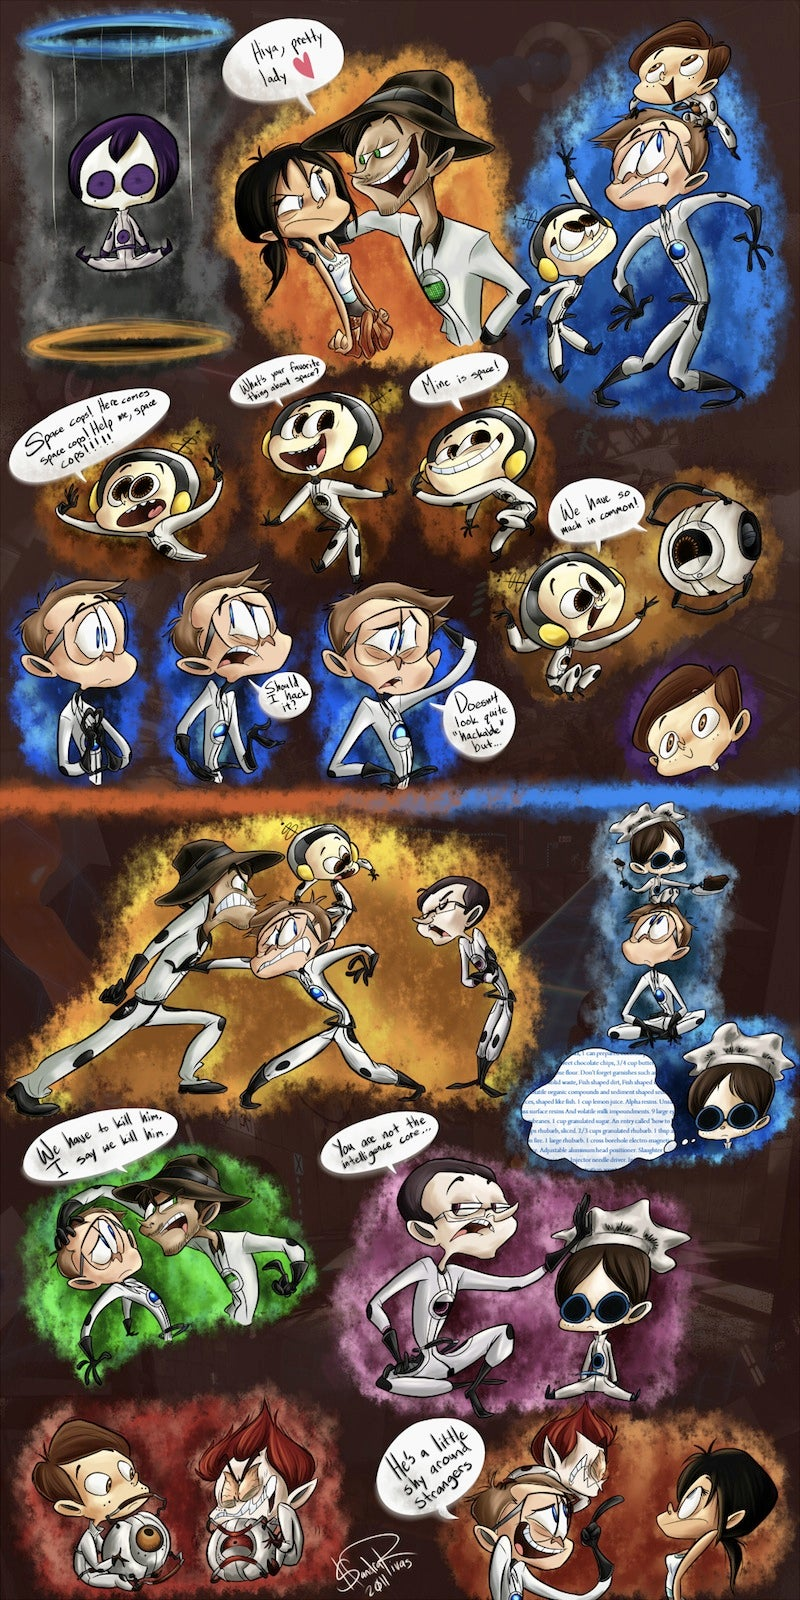 What if Portal was a Ren & Stimpy-inspired Saturday morning cartoon?